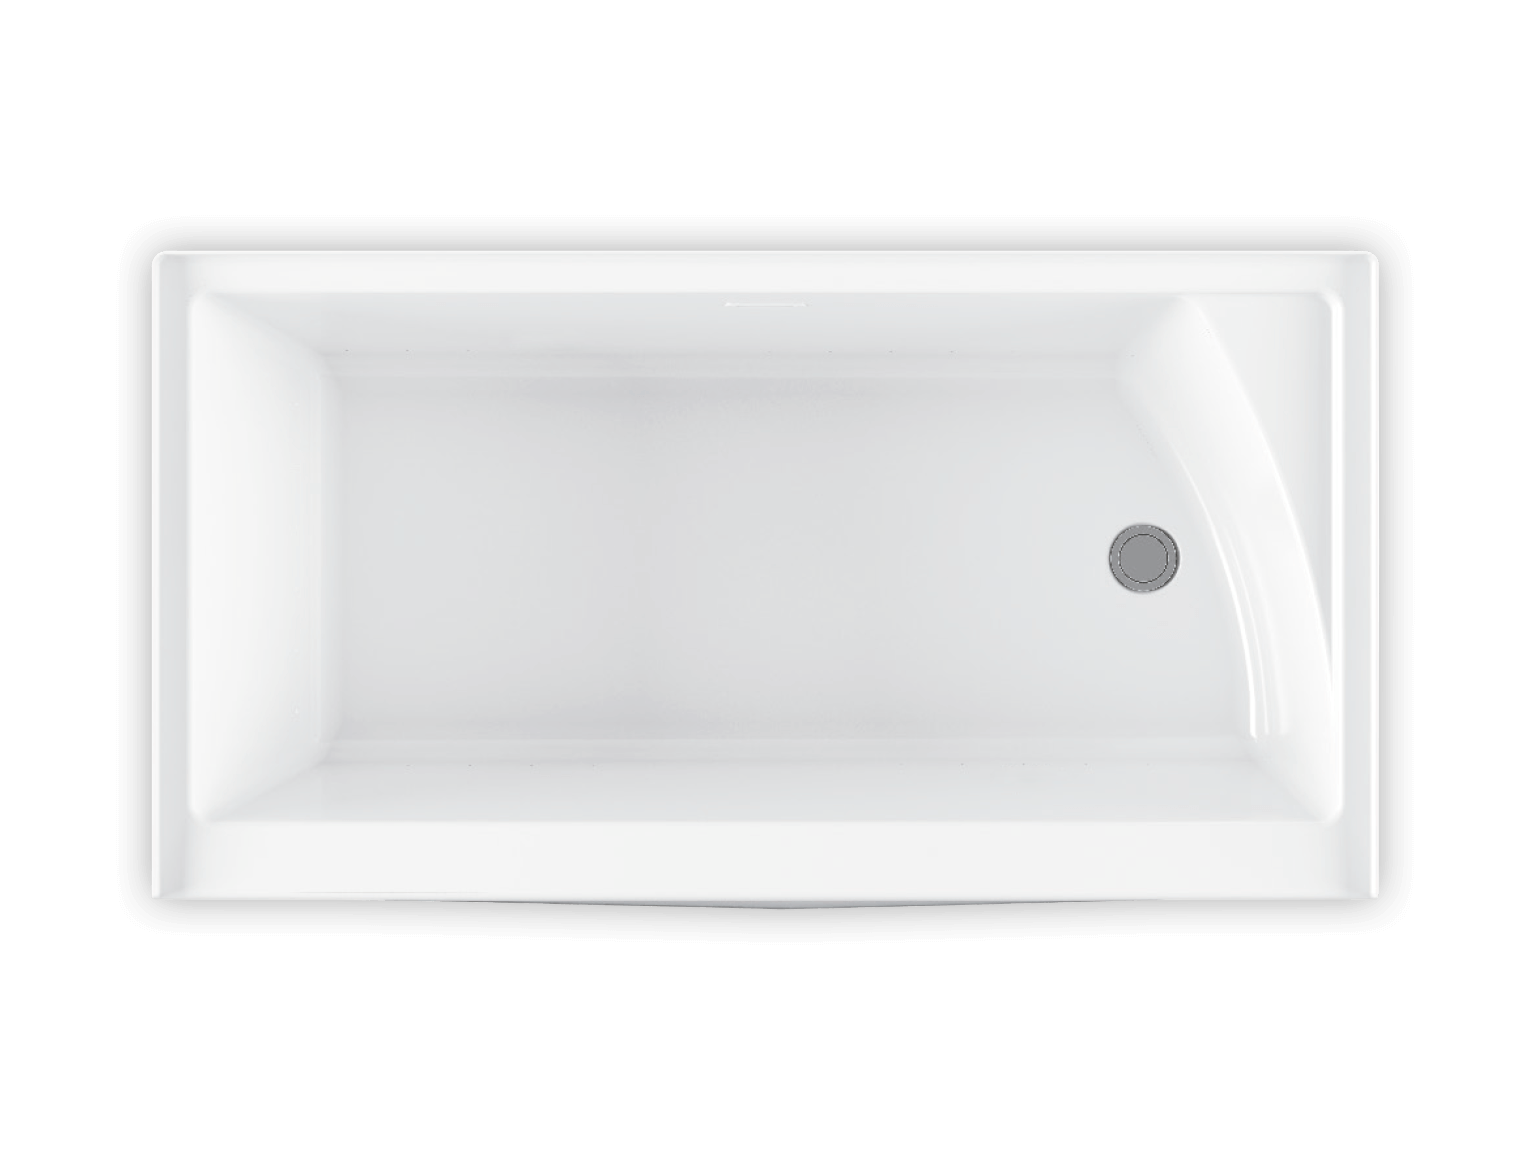 Bainultra Citti® collection freestanding alcove air jet bathtub for your modern bathroom